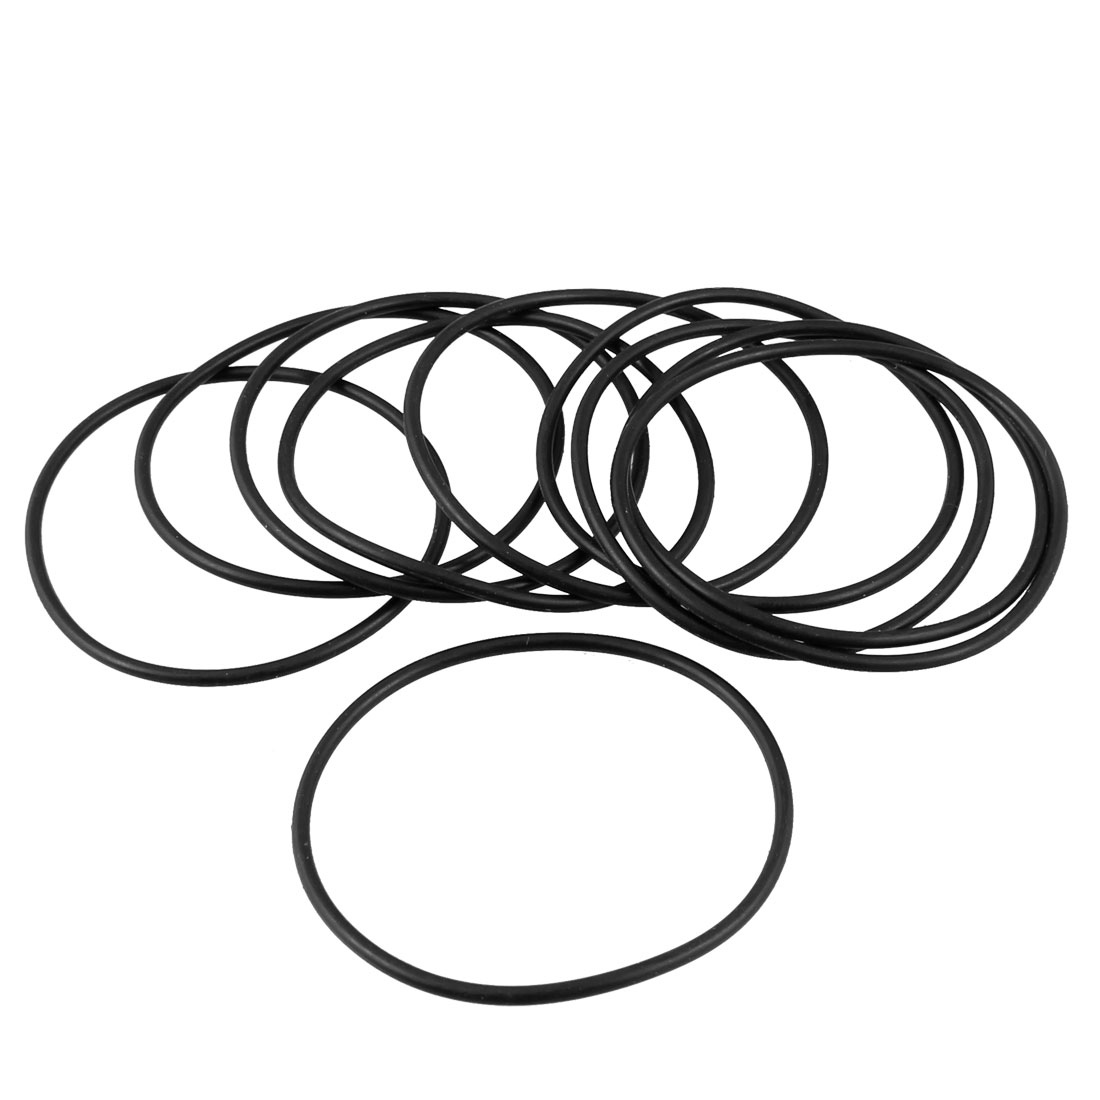 46mm x 42mm x 2mm Rubber Sealing Oil Filter O Shape Rings Gaskets 10 Pcs